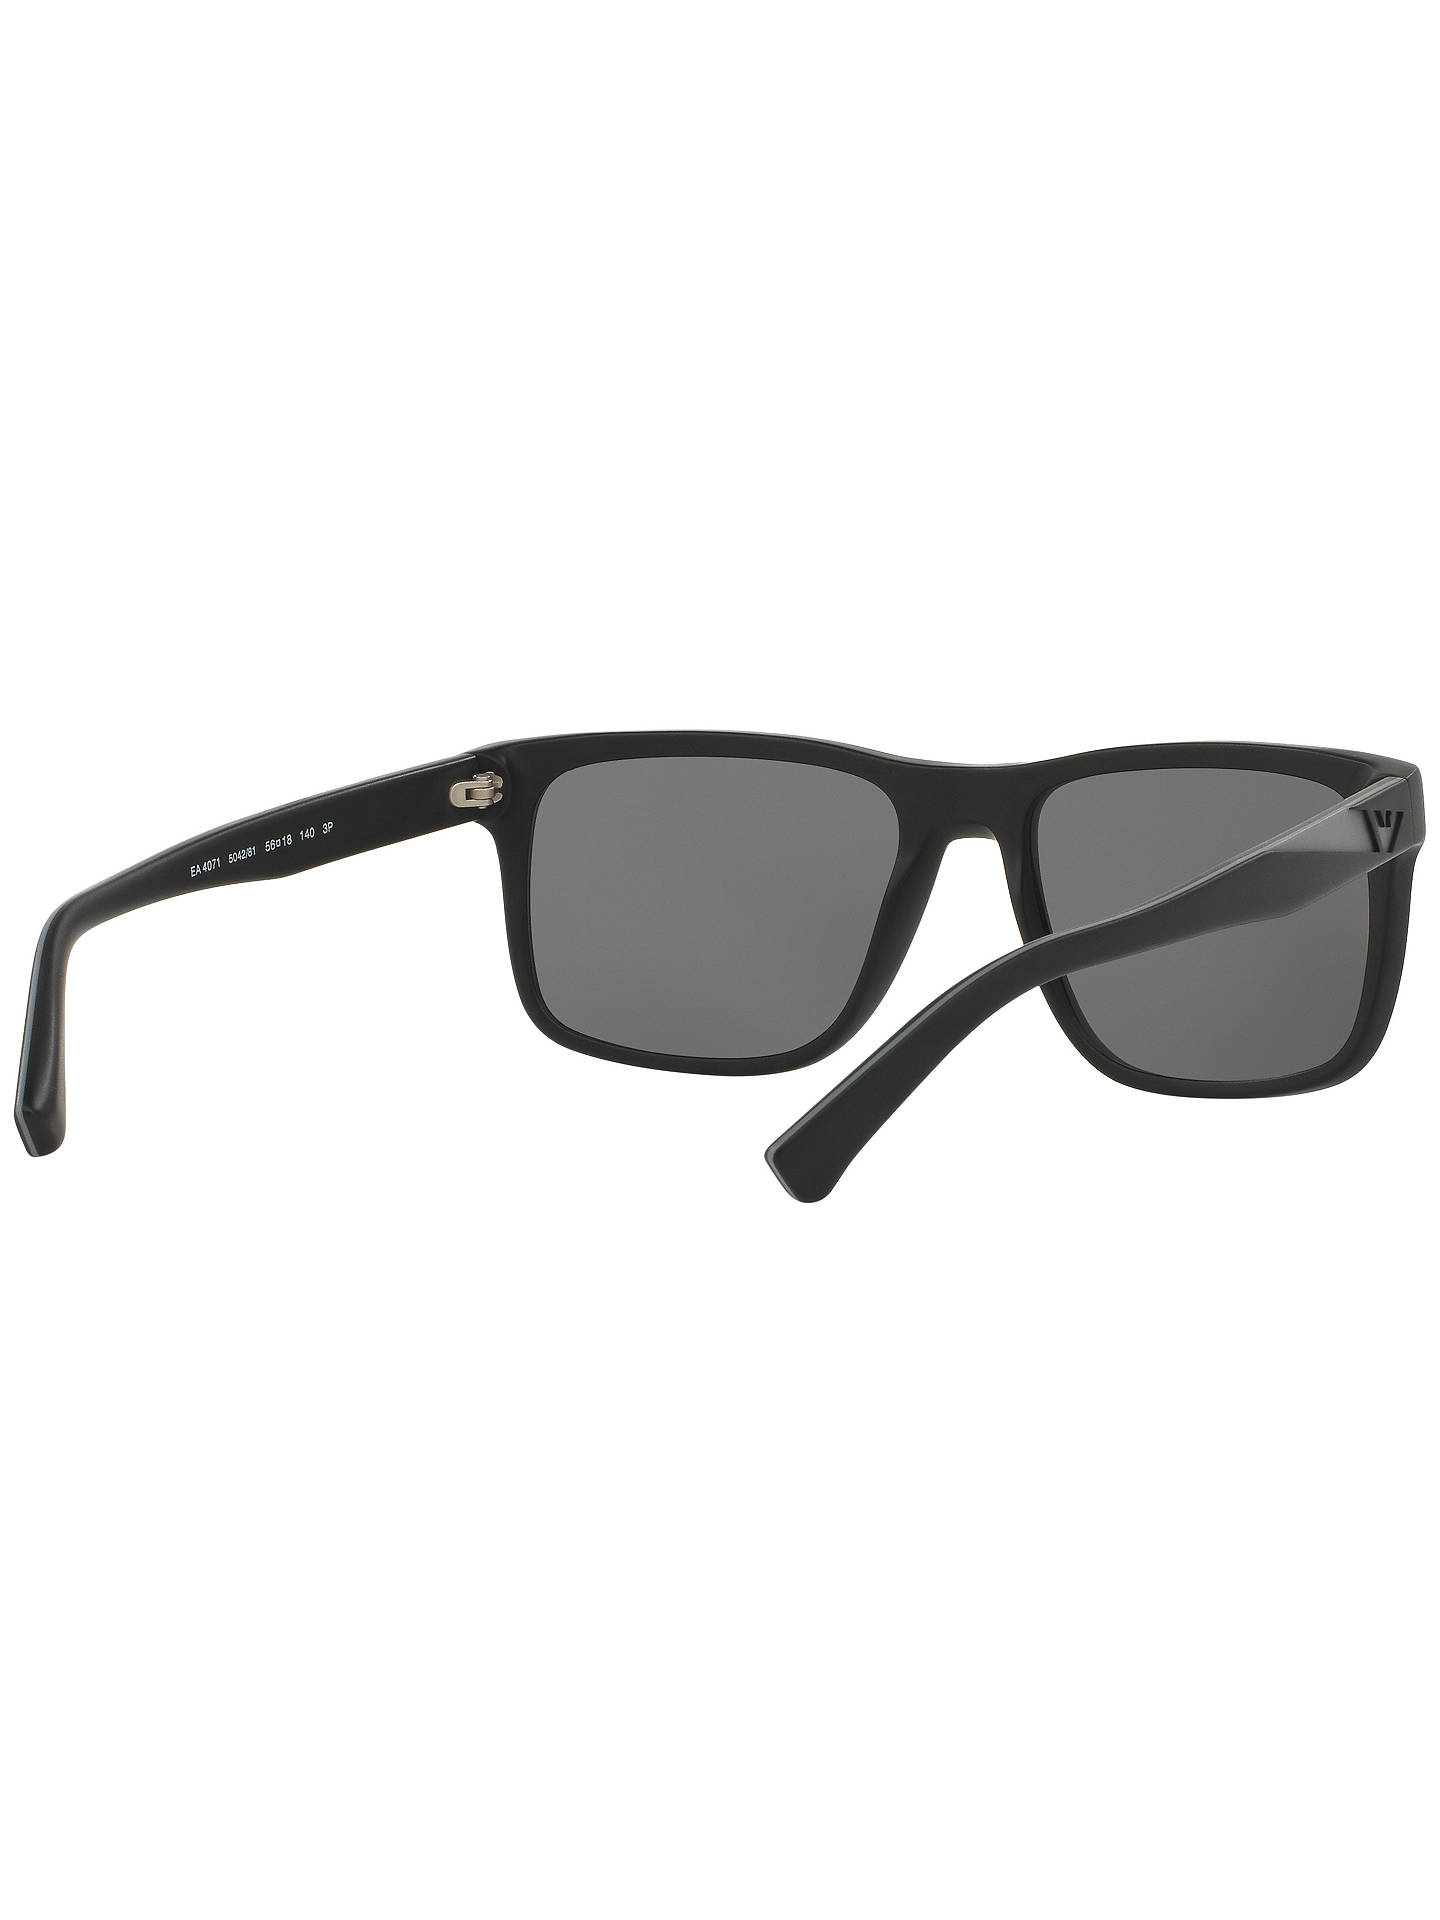 89e2d60270e7 ... Buy Emporio Armani EA4071 Polarised Square Sunglasses